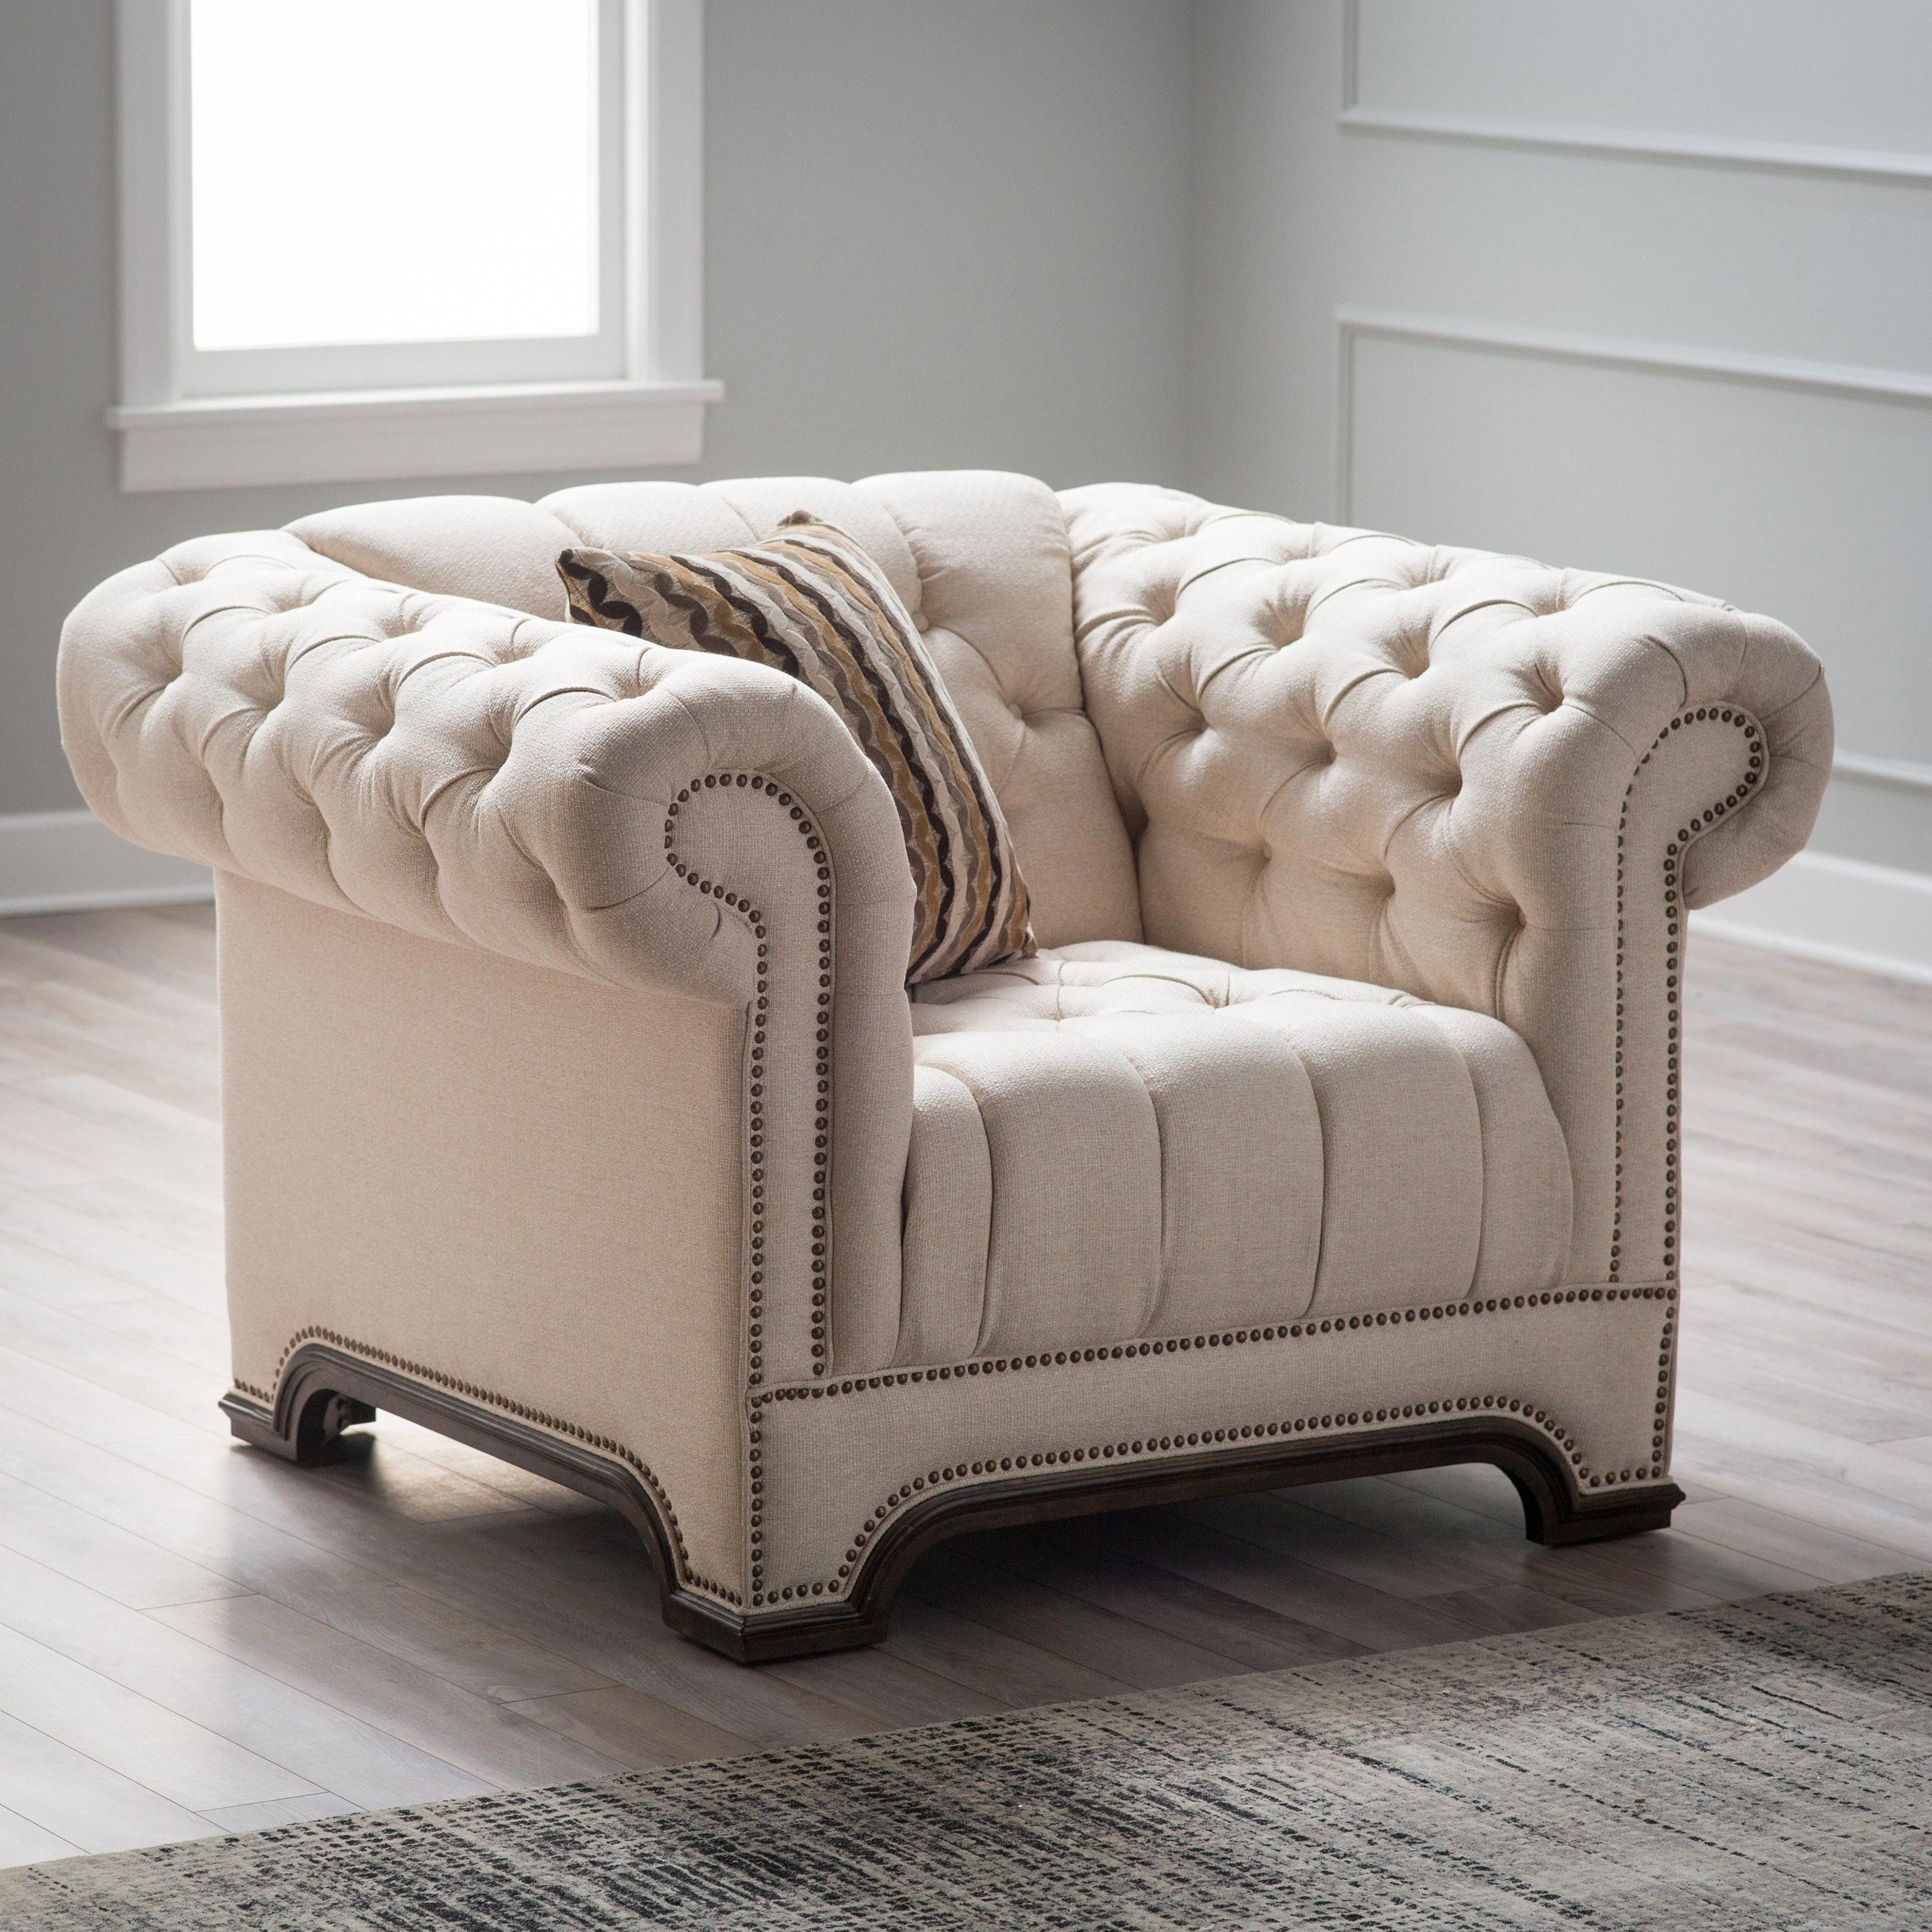 Belham Living Barron Chair Accent Chairs At Hayneedle